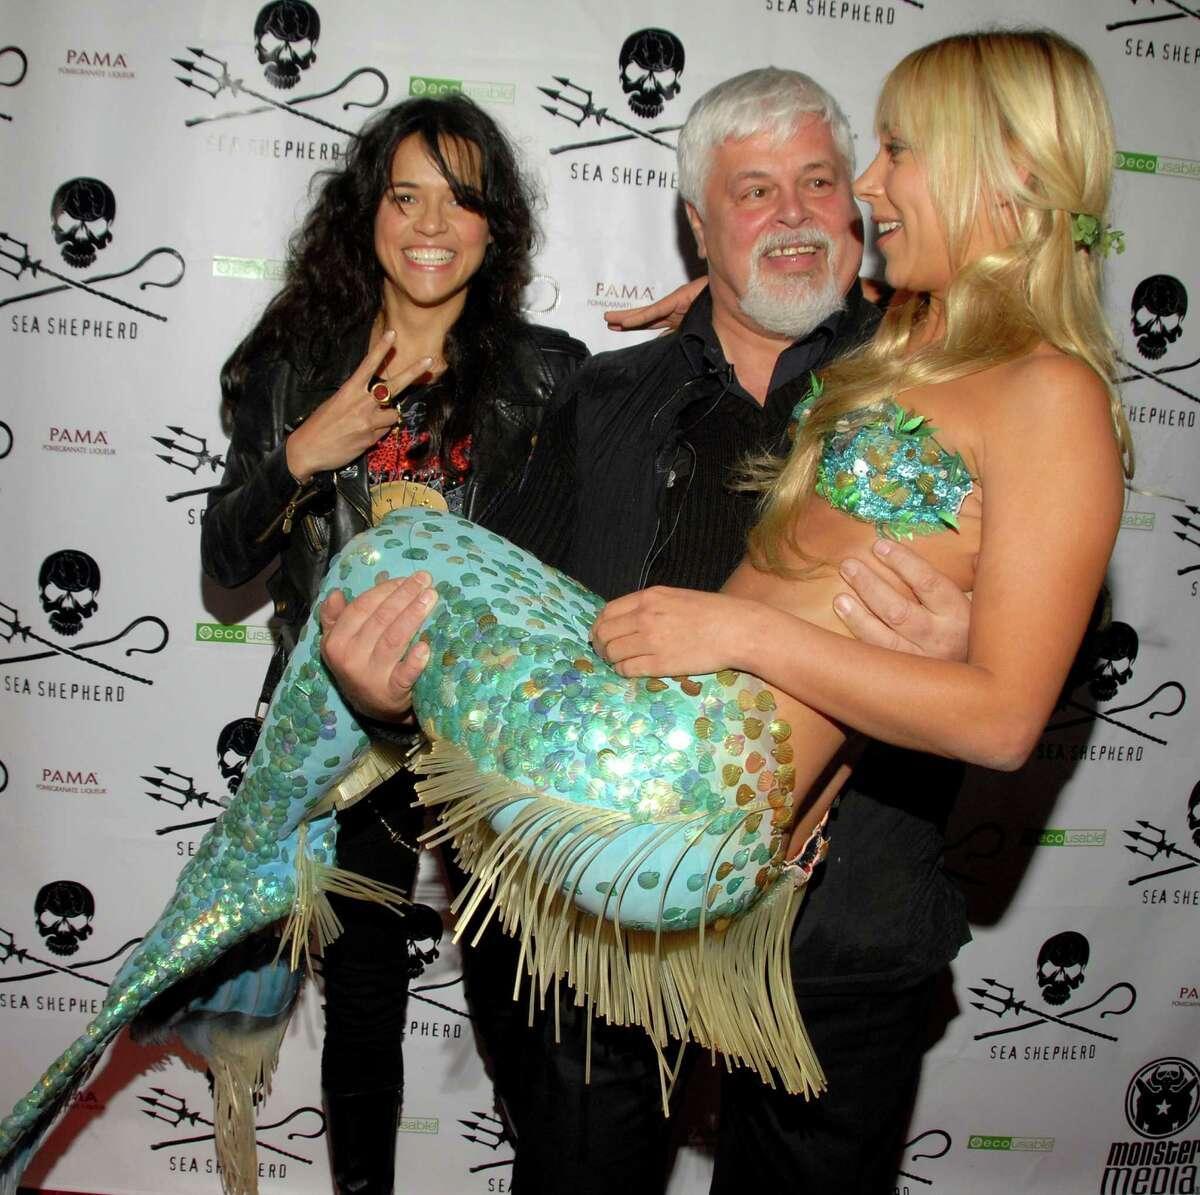 Actress Michelle Rodriguez, activist Paul Watson and a mermaid attend Animal Planet & Sea Shepherd Conservation Society event on October 23, 2010 in Los Angeles. (Photo by Mark Sullivan/WireImage)